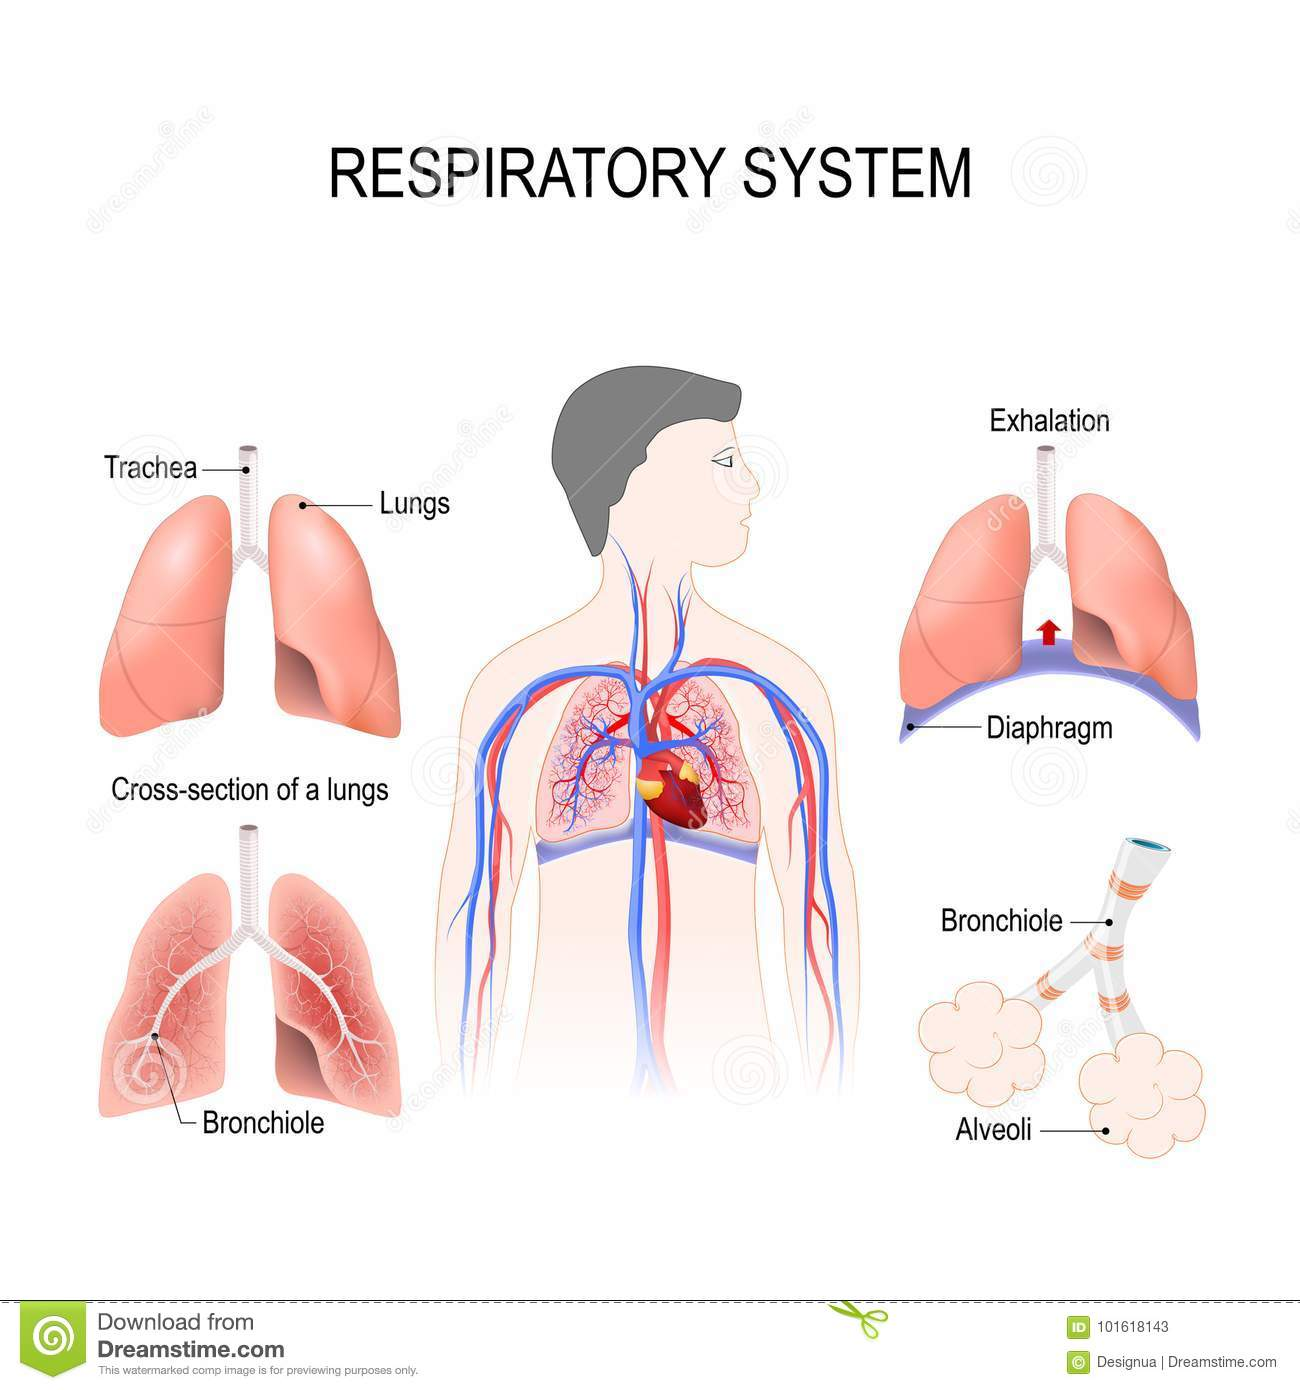 2a4752f2edb Respiratory system stock vector. Illustration of diagram - 101618143